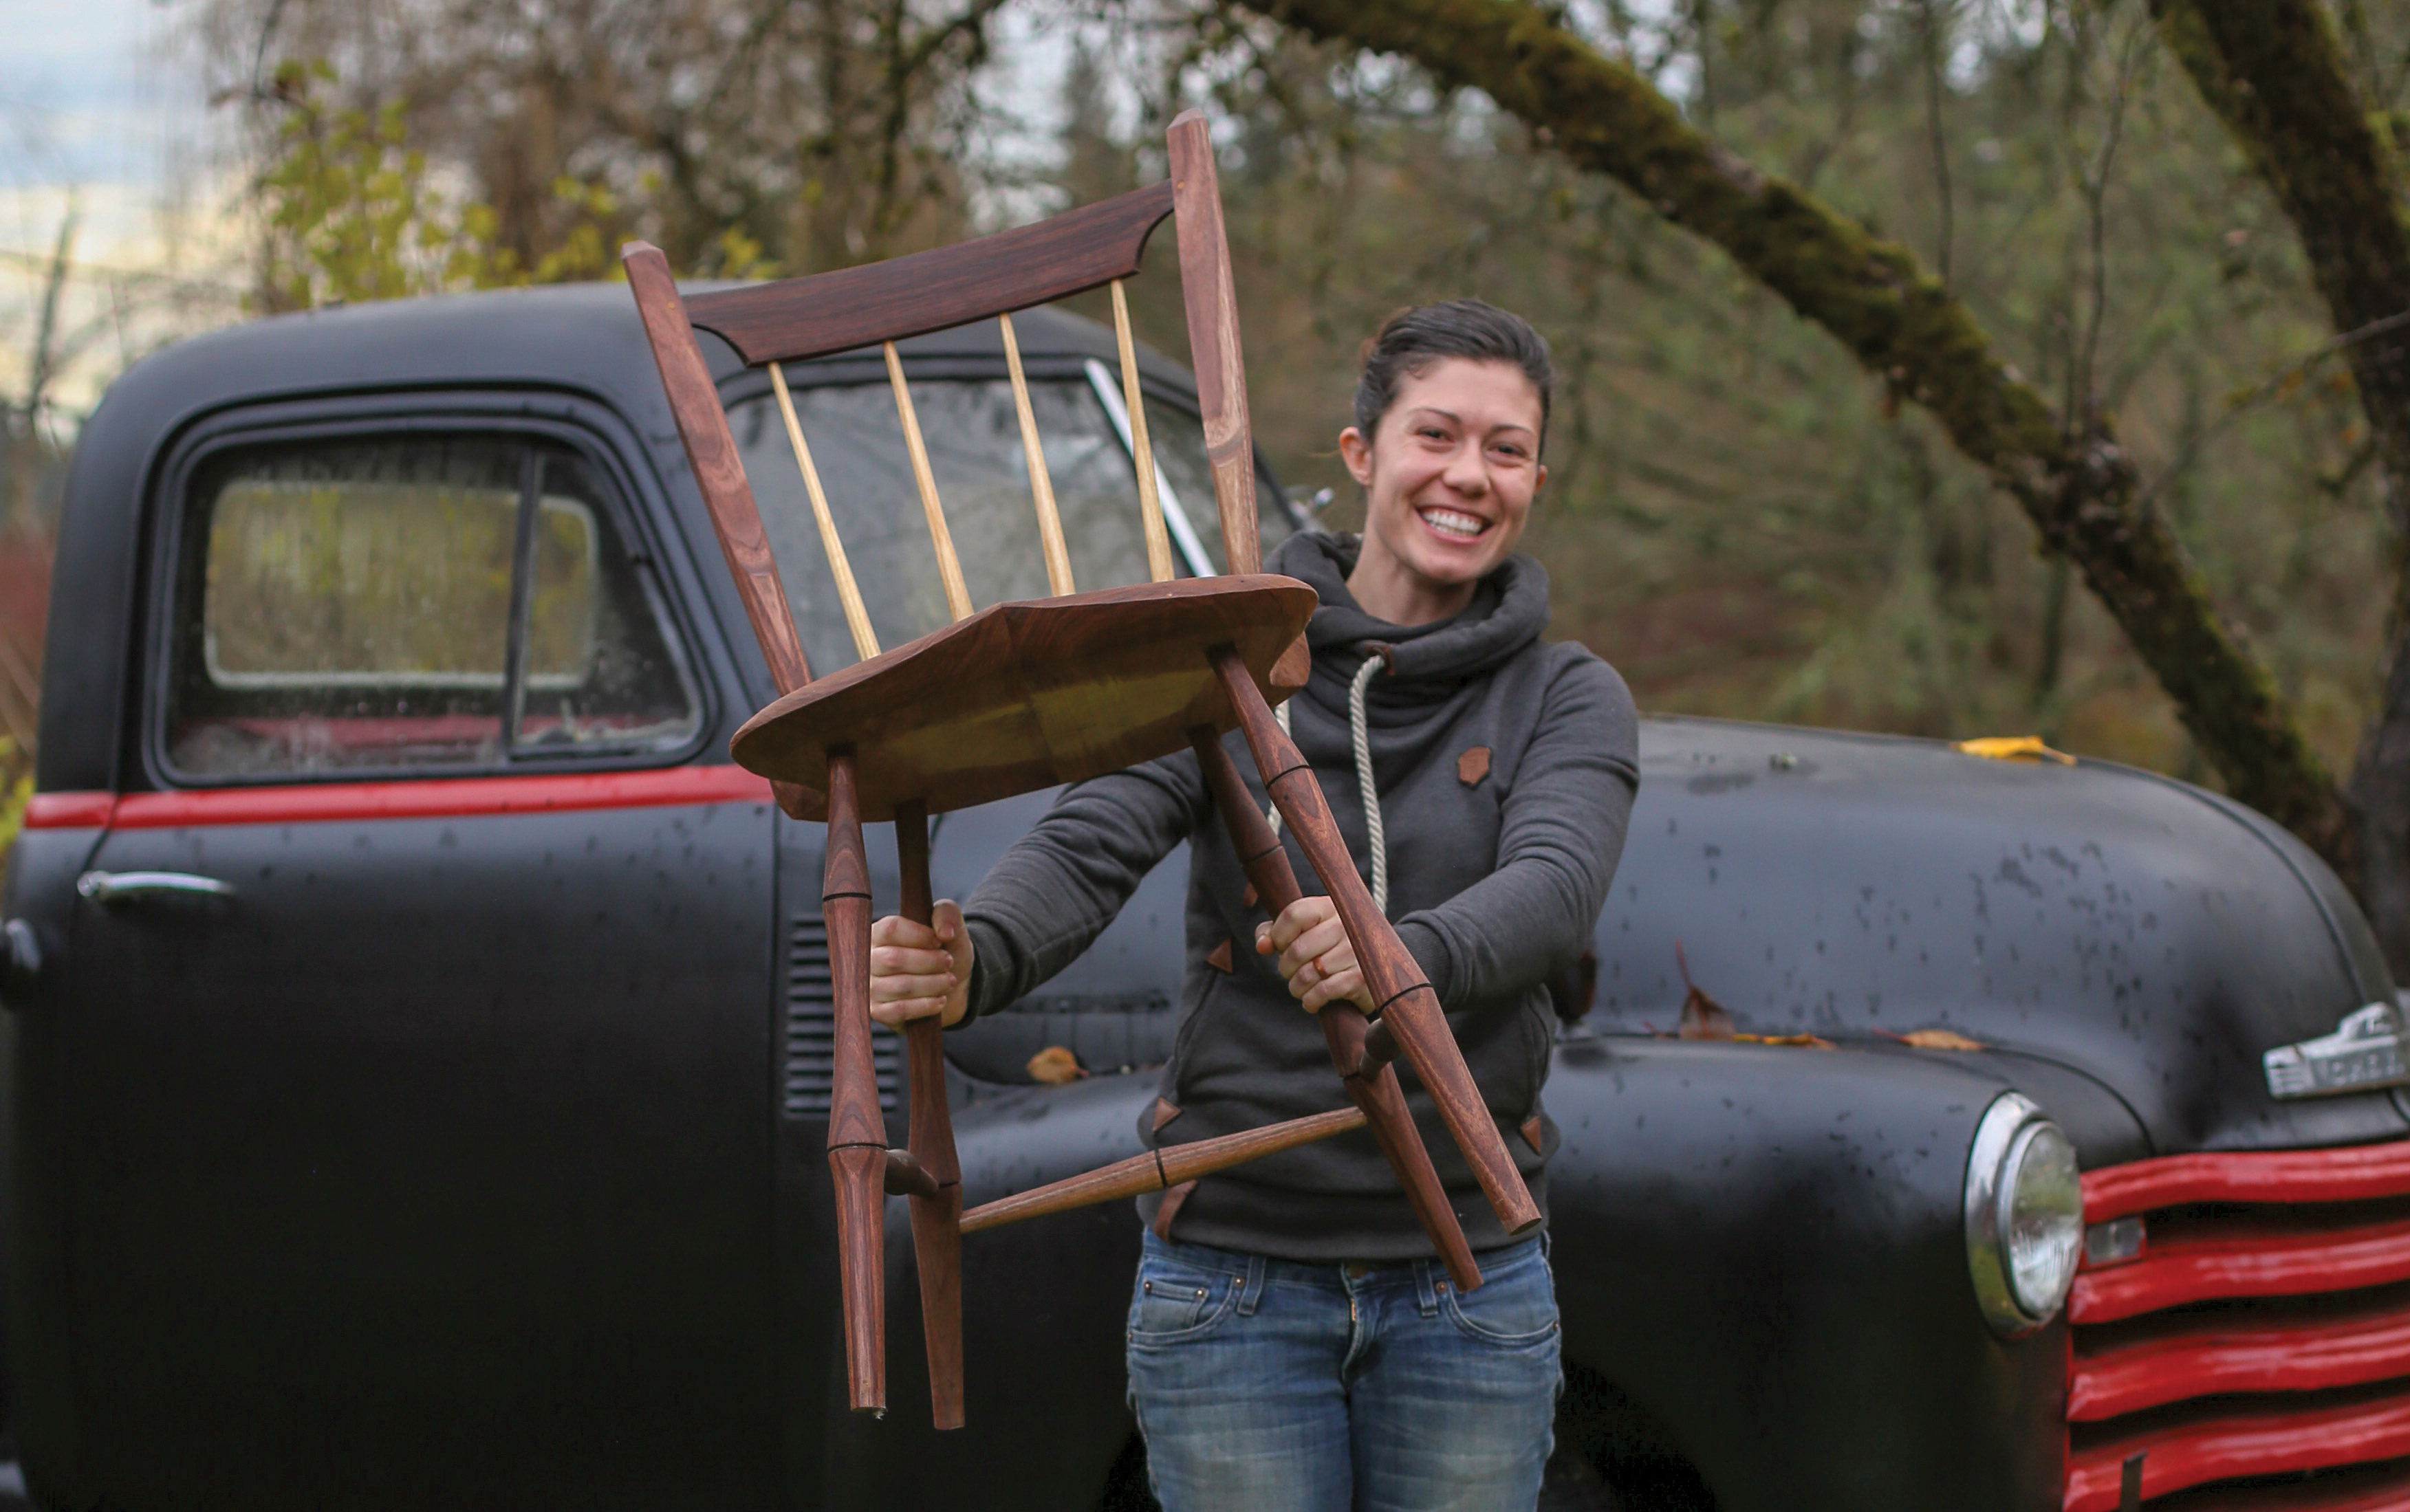 anne with her finished windsor chair